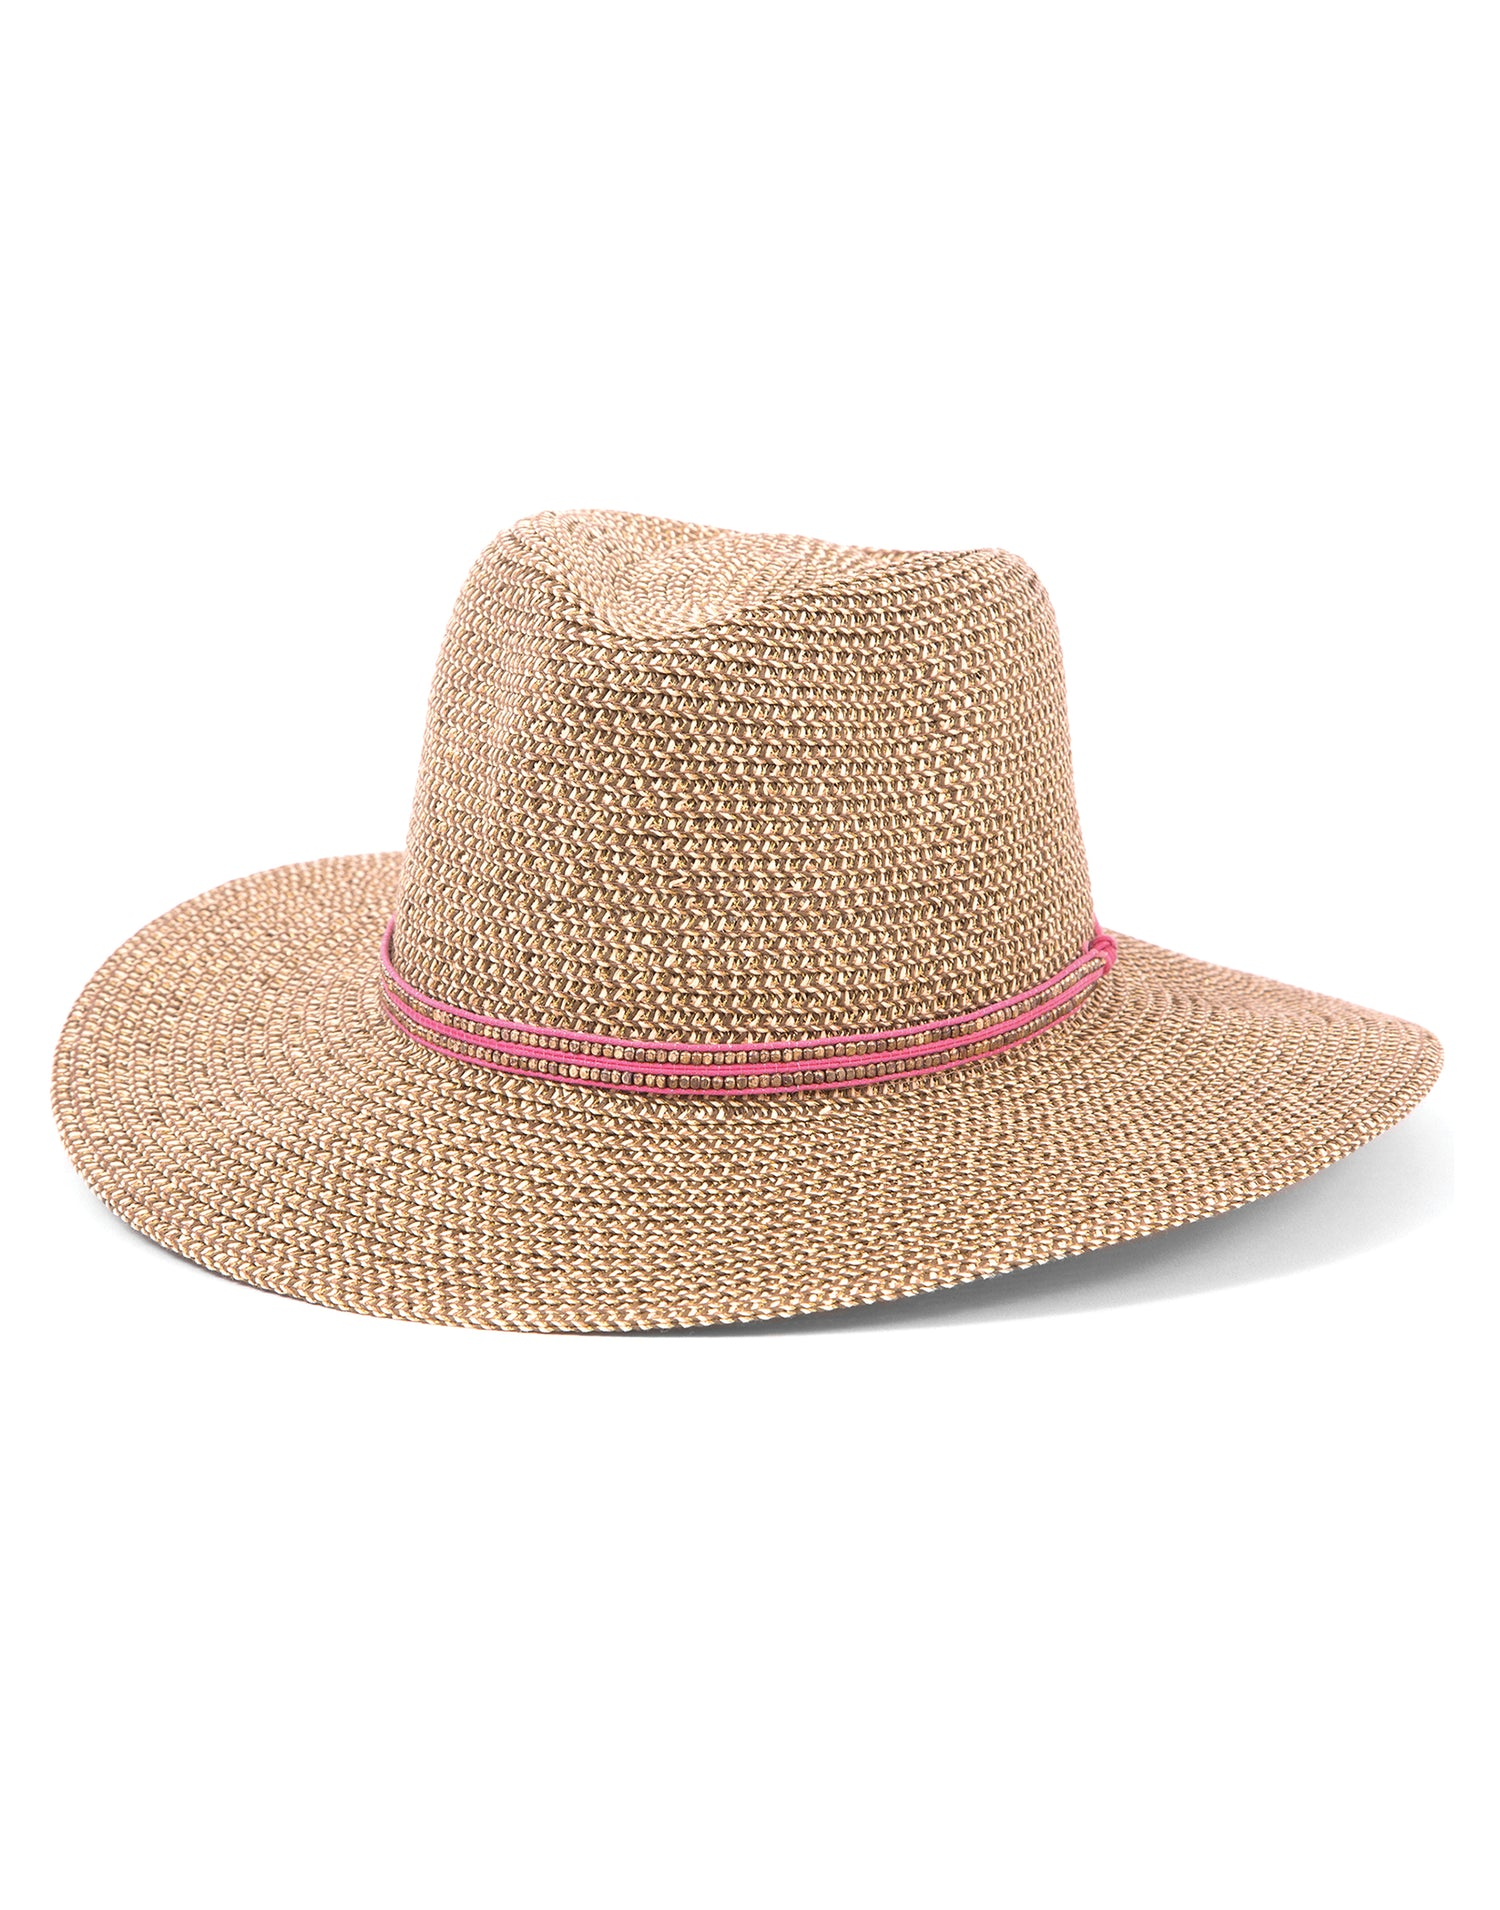 Ale by Alessandra's Kenzie Fedora Beach Hat with Gold/Pink Beaded Trim - product view